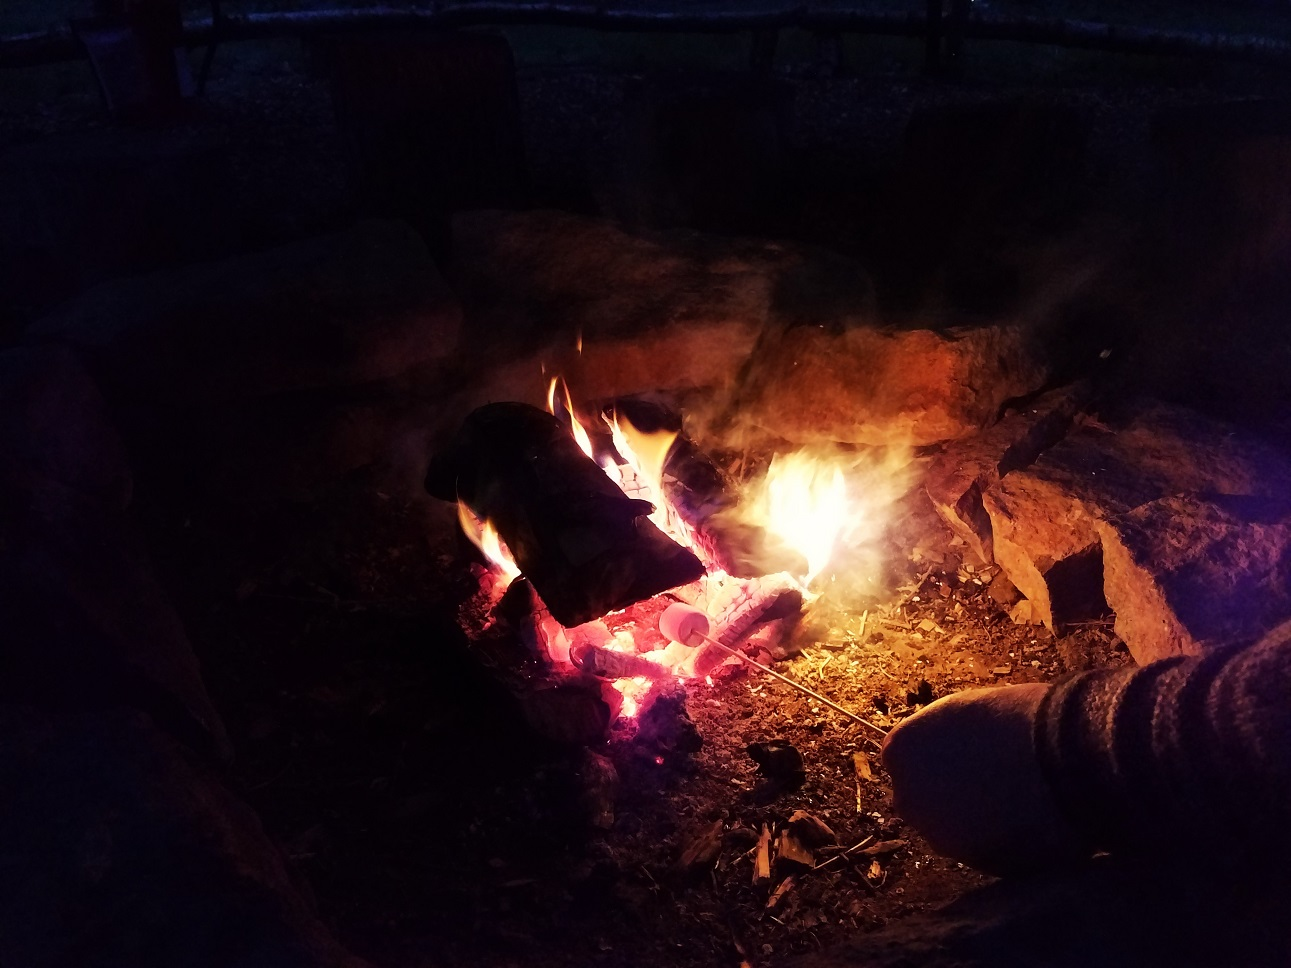 Toasting marshmallows on a campfire - family friendly glamping site North Star Club